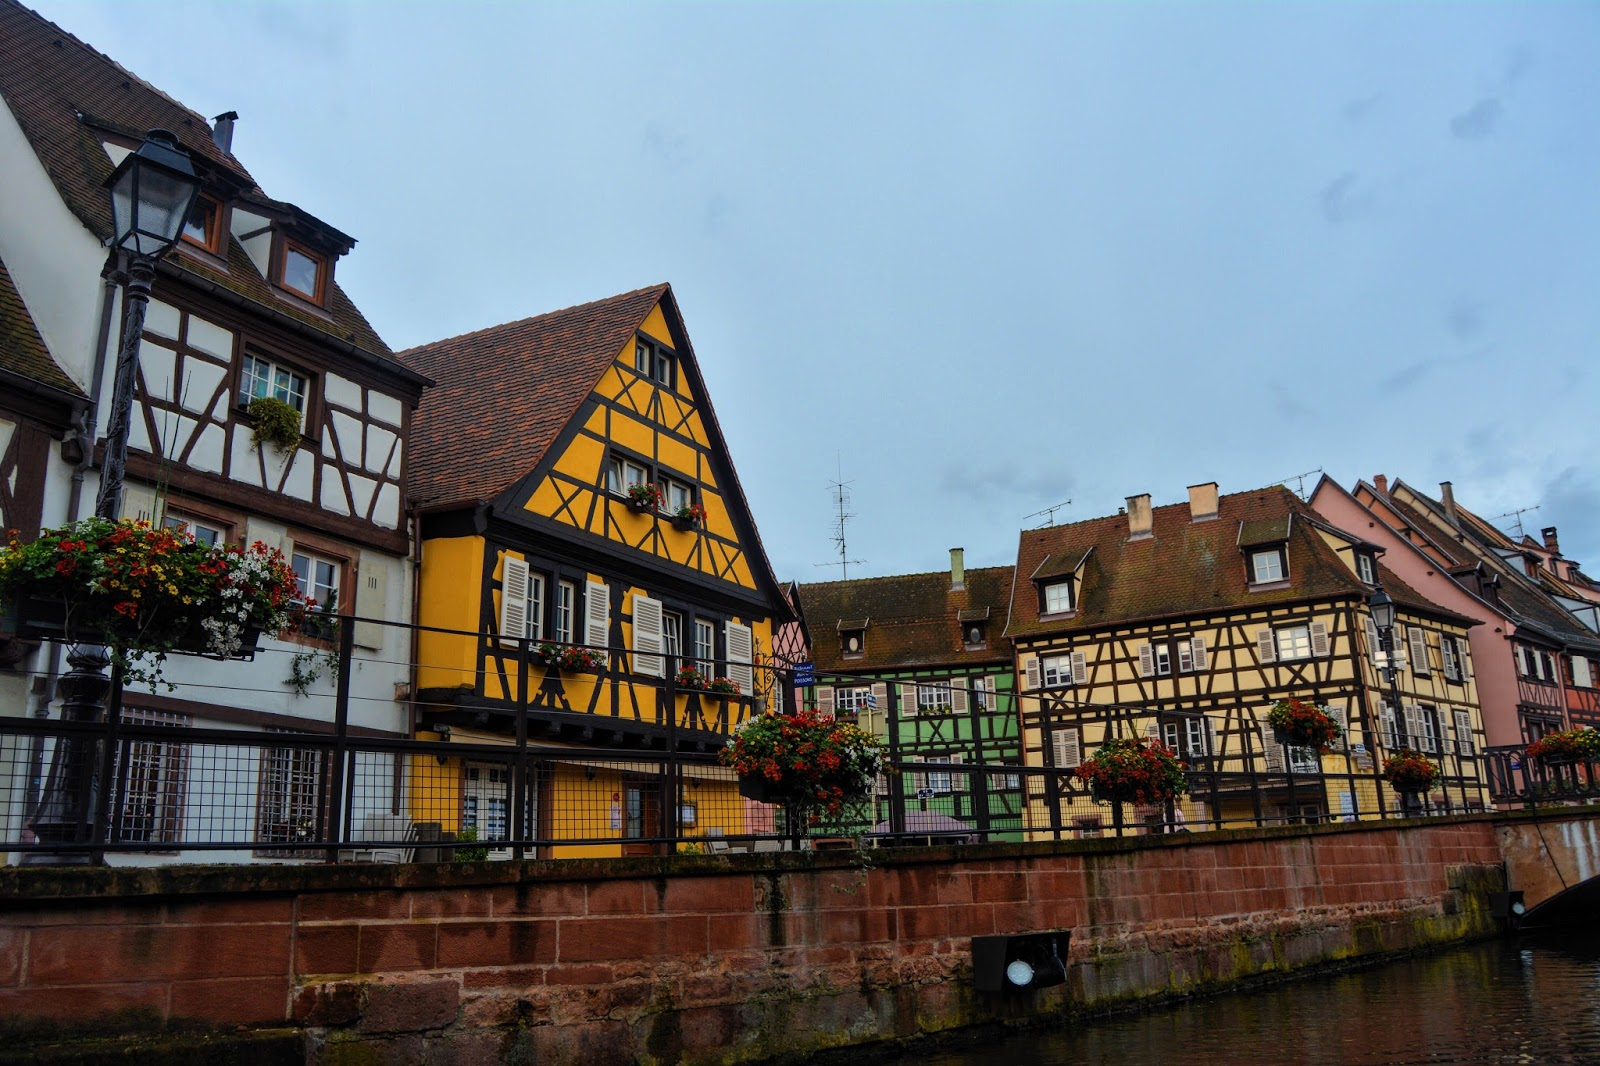 A colourful village in France, Colmar with lots of colourful houses